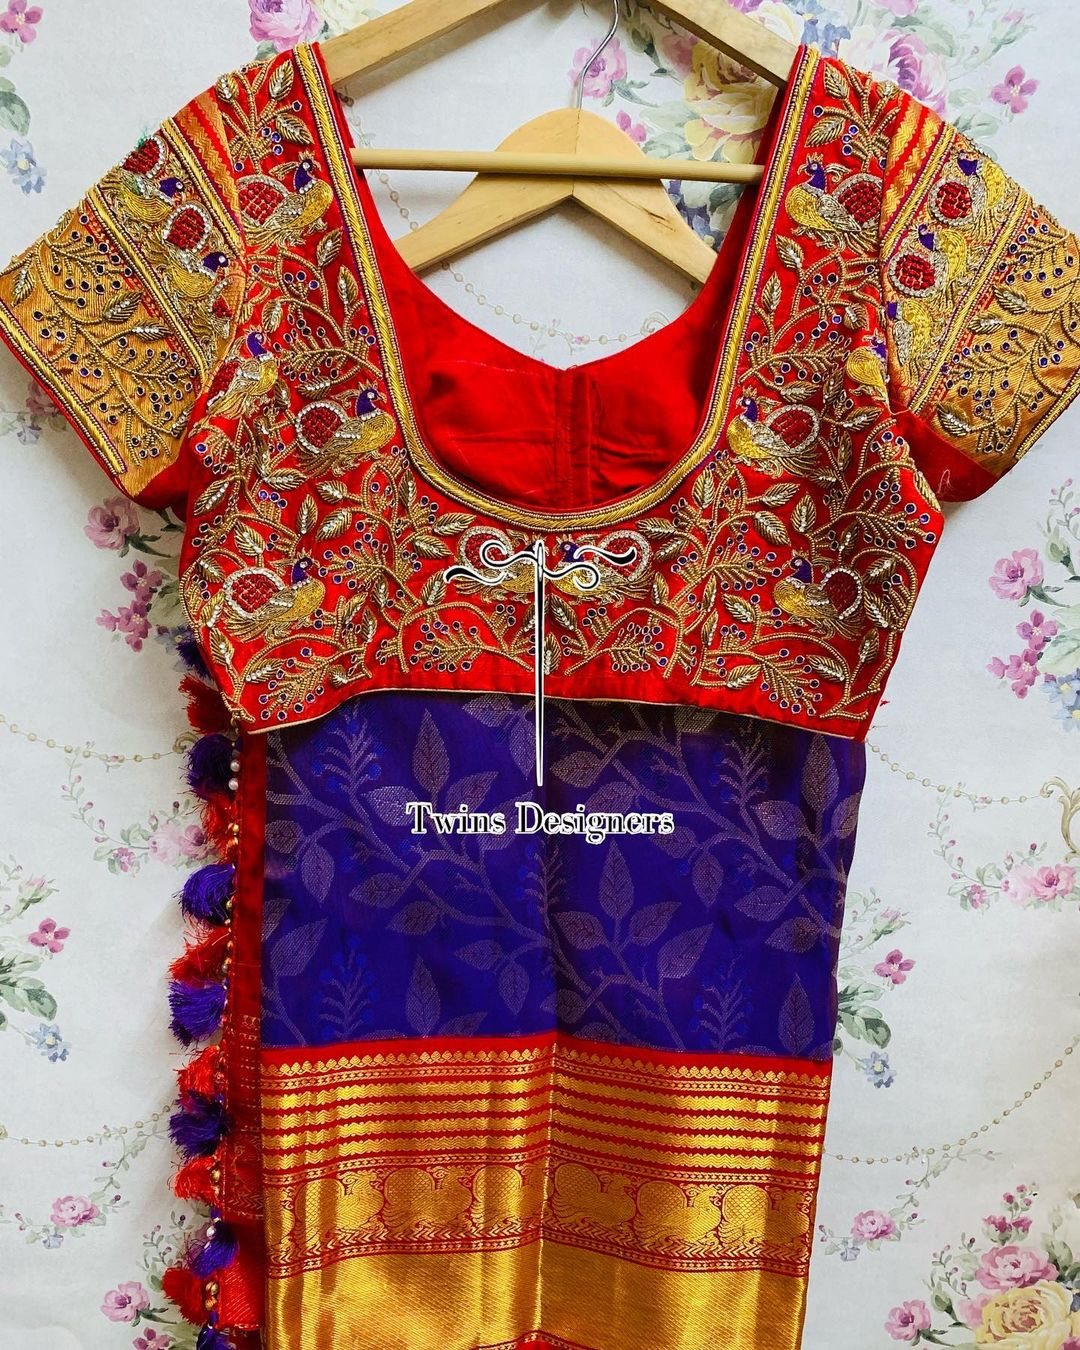 Customised maggamwork blouse. Stunning red color bridal blouse with maggam work. 2021-06-11